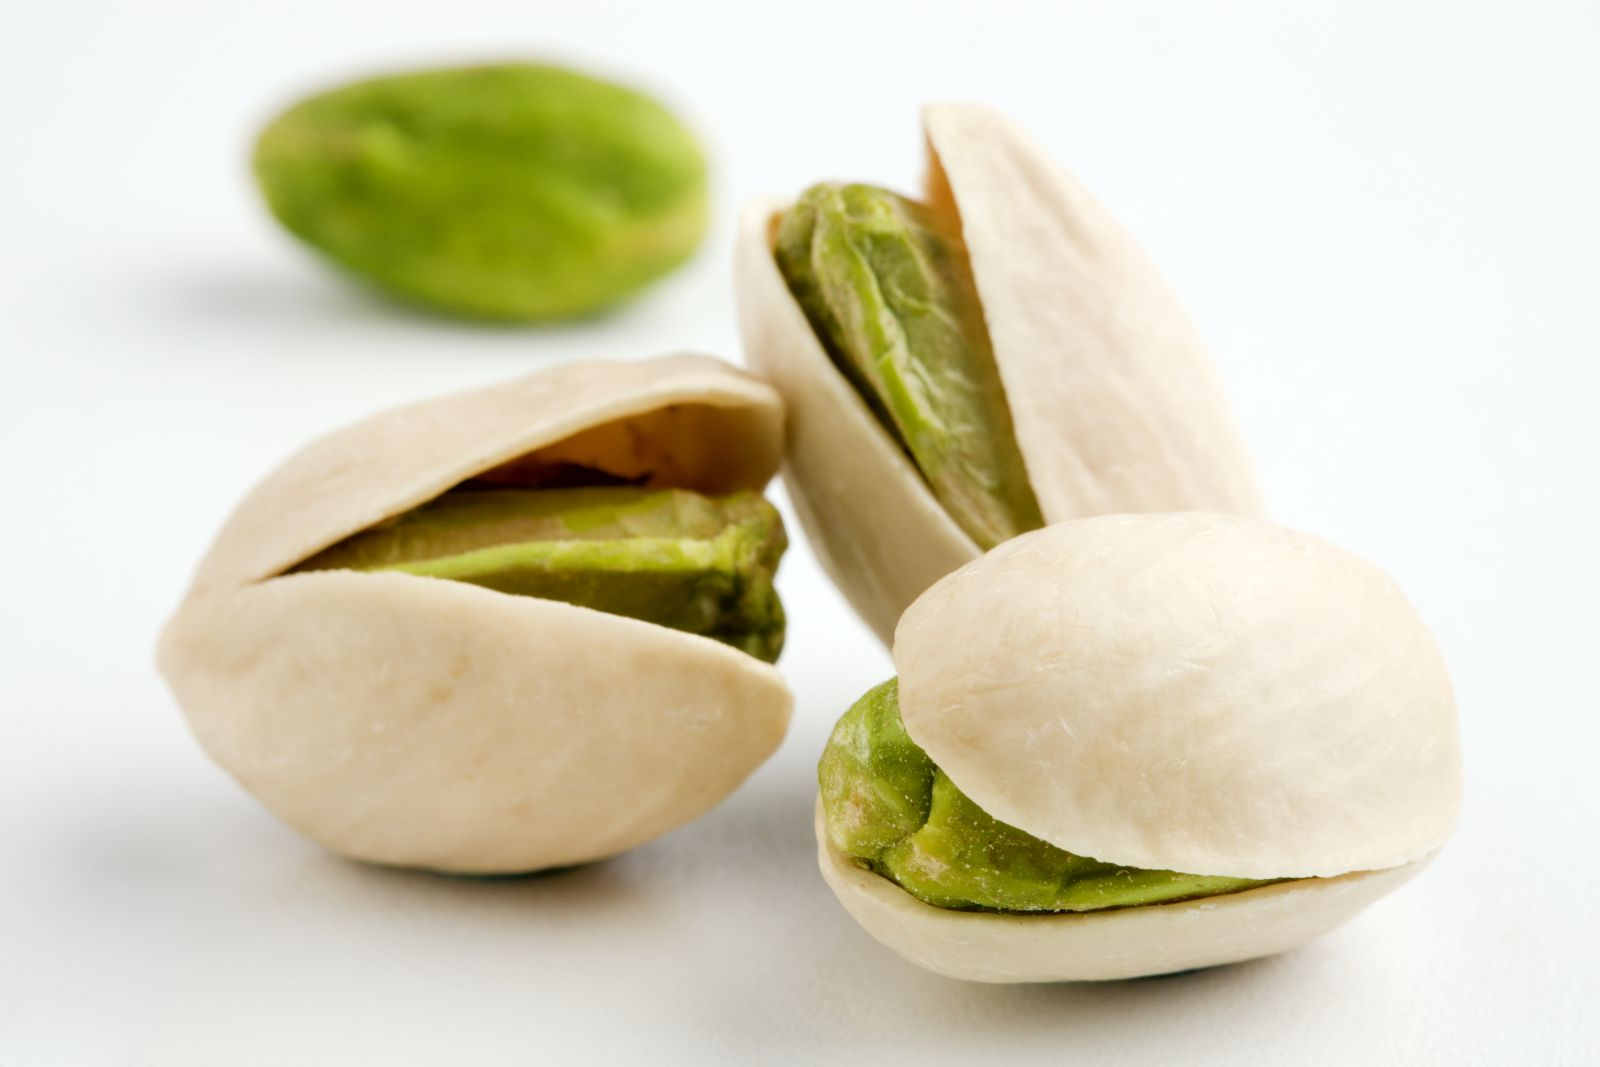 Pick Pistachios instead